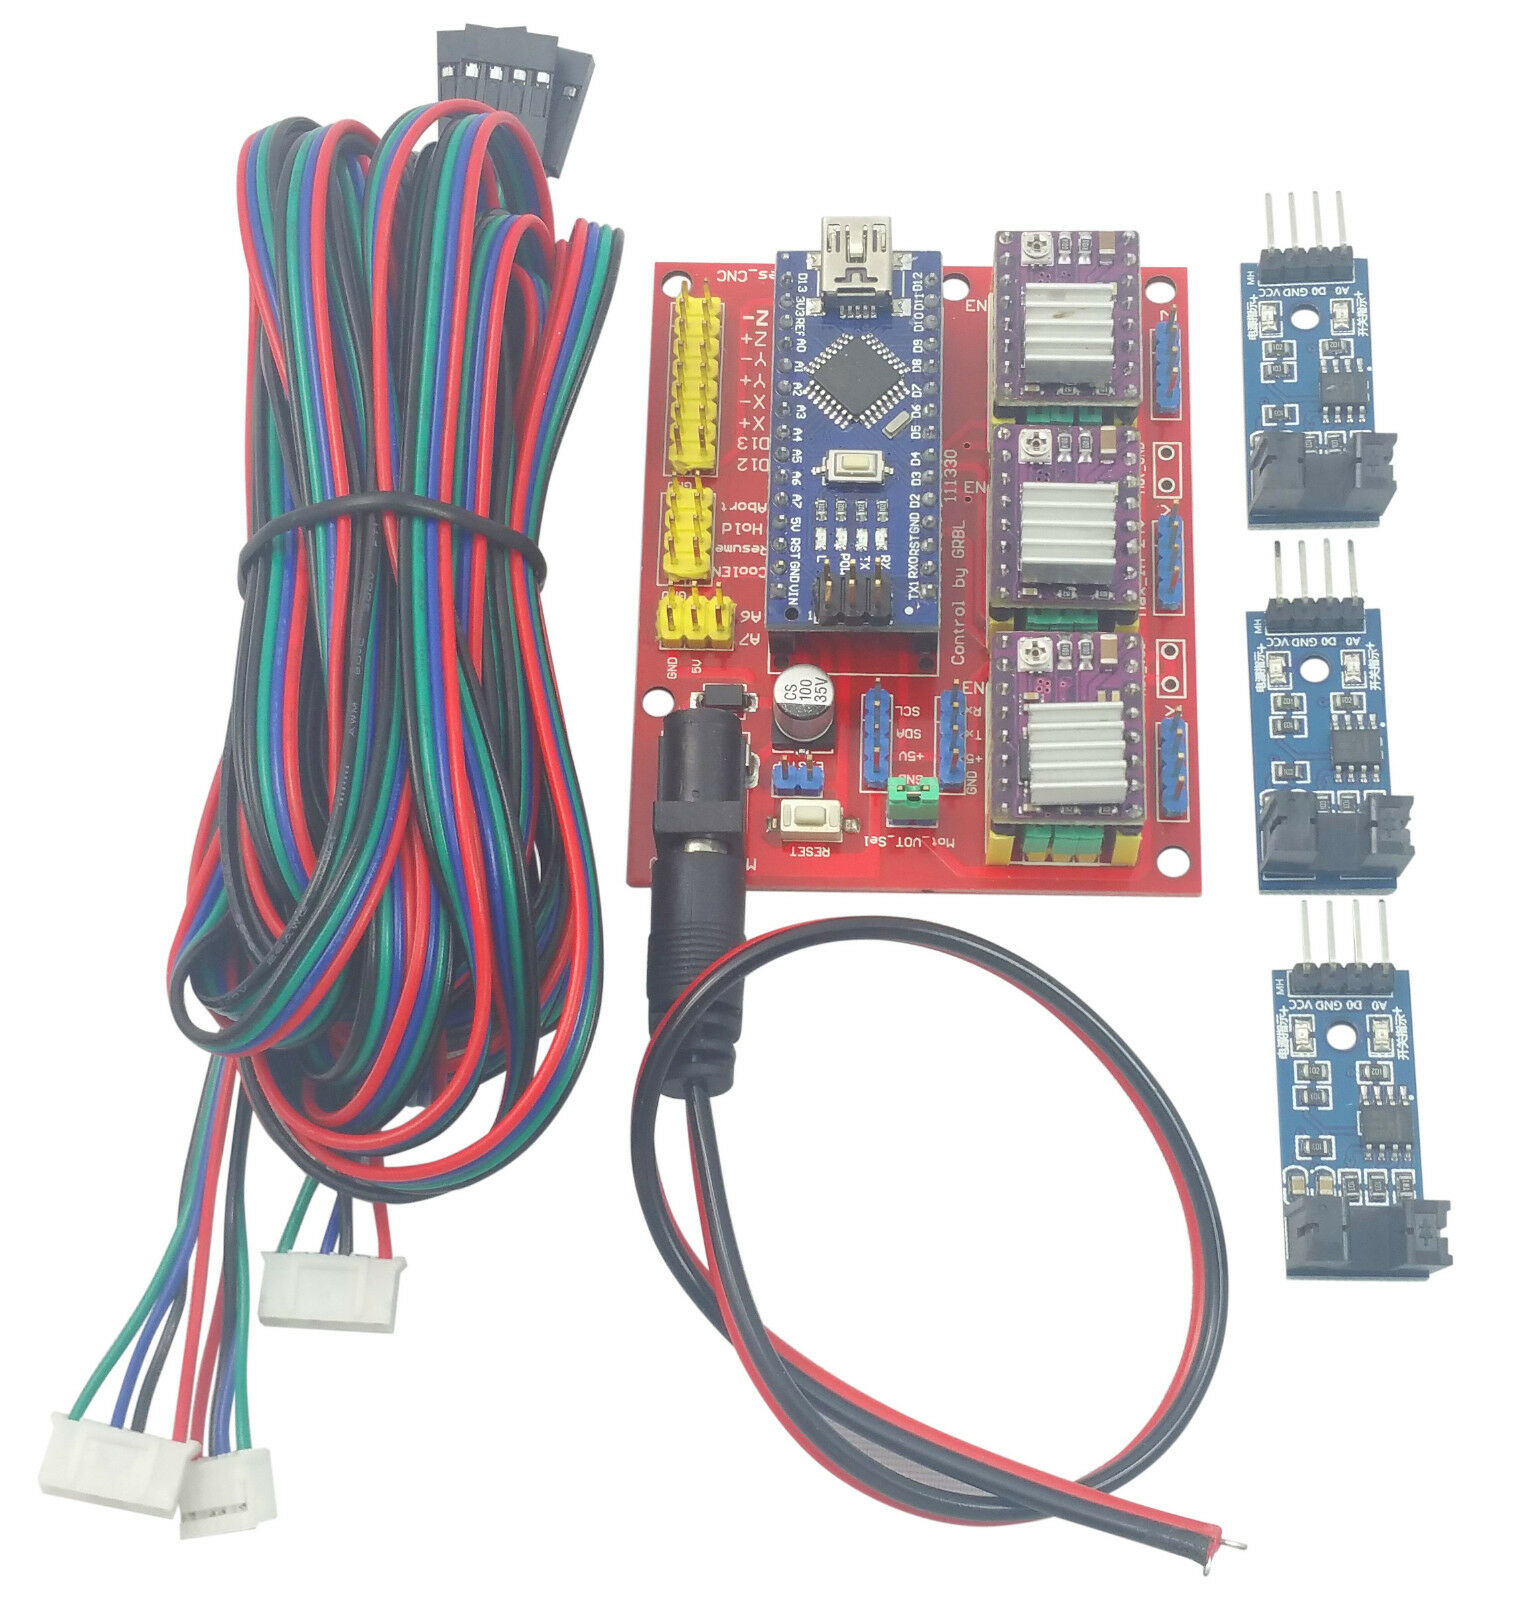 Details about Arduino Nano CNC Shield DRV8825 Kit w/ 3x Optical Sensor + 3x  2M Stepper Cables